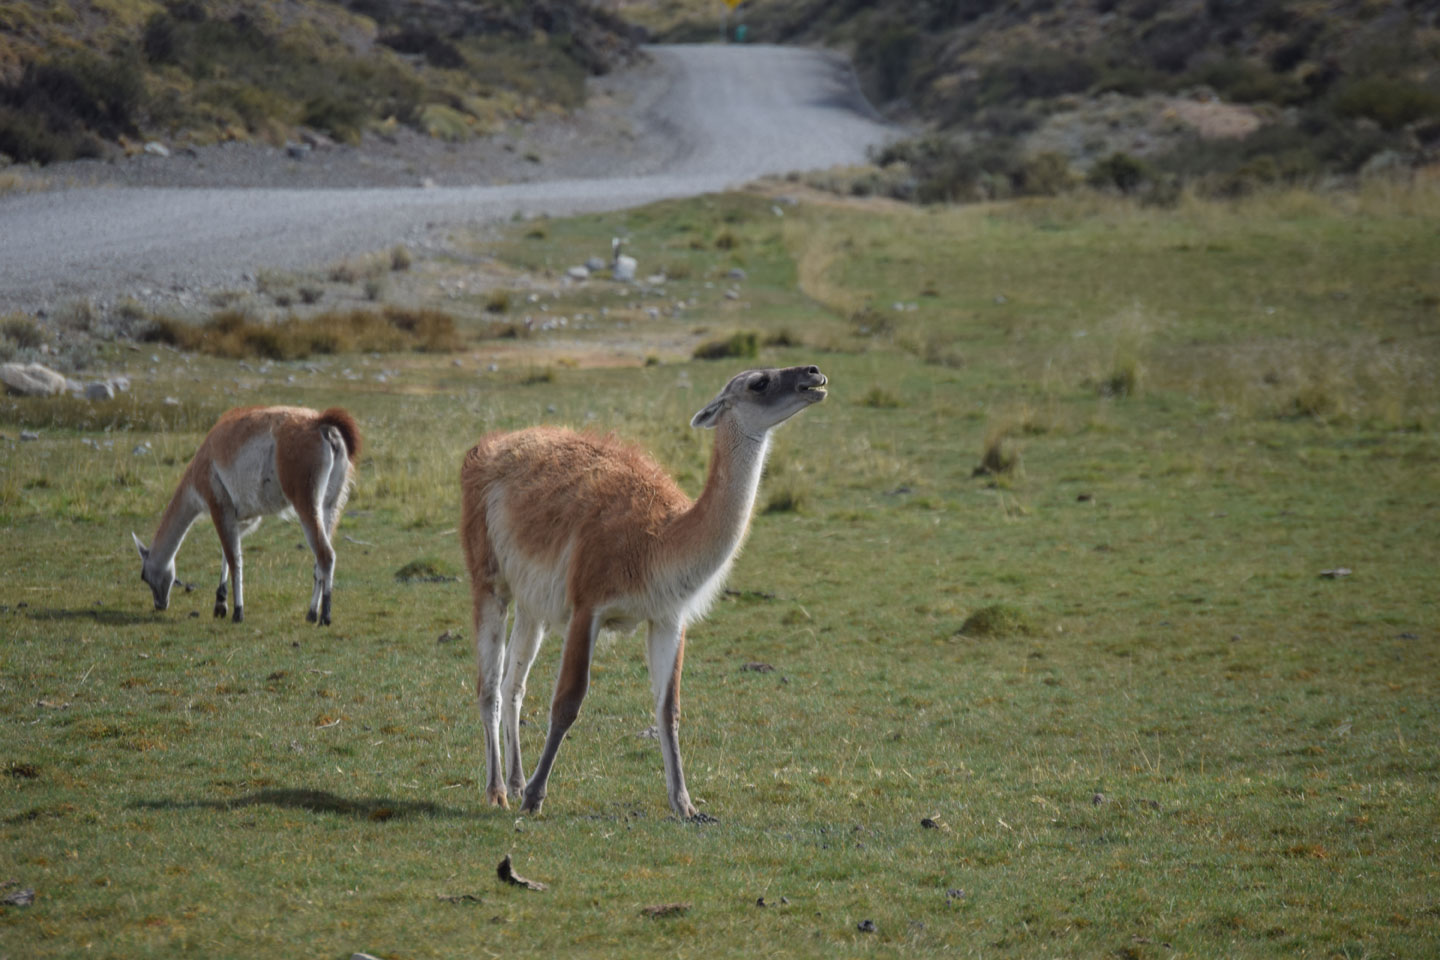 Young guanacos by the side of the road